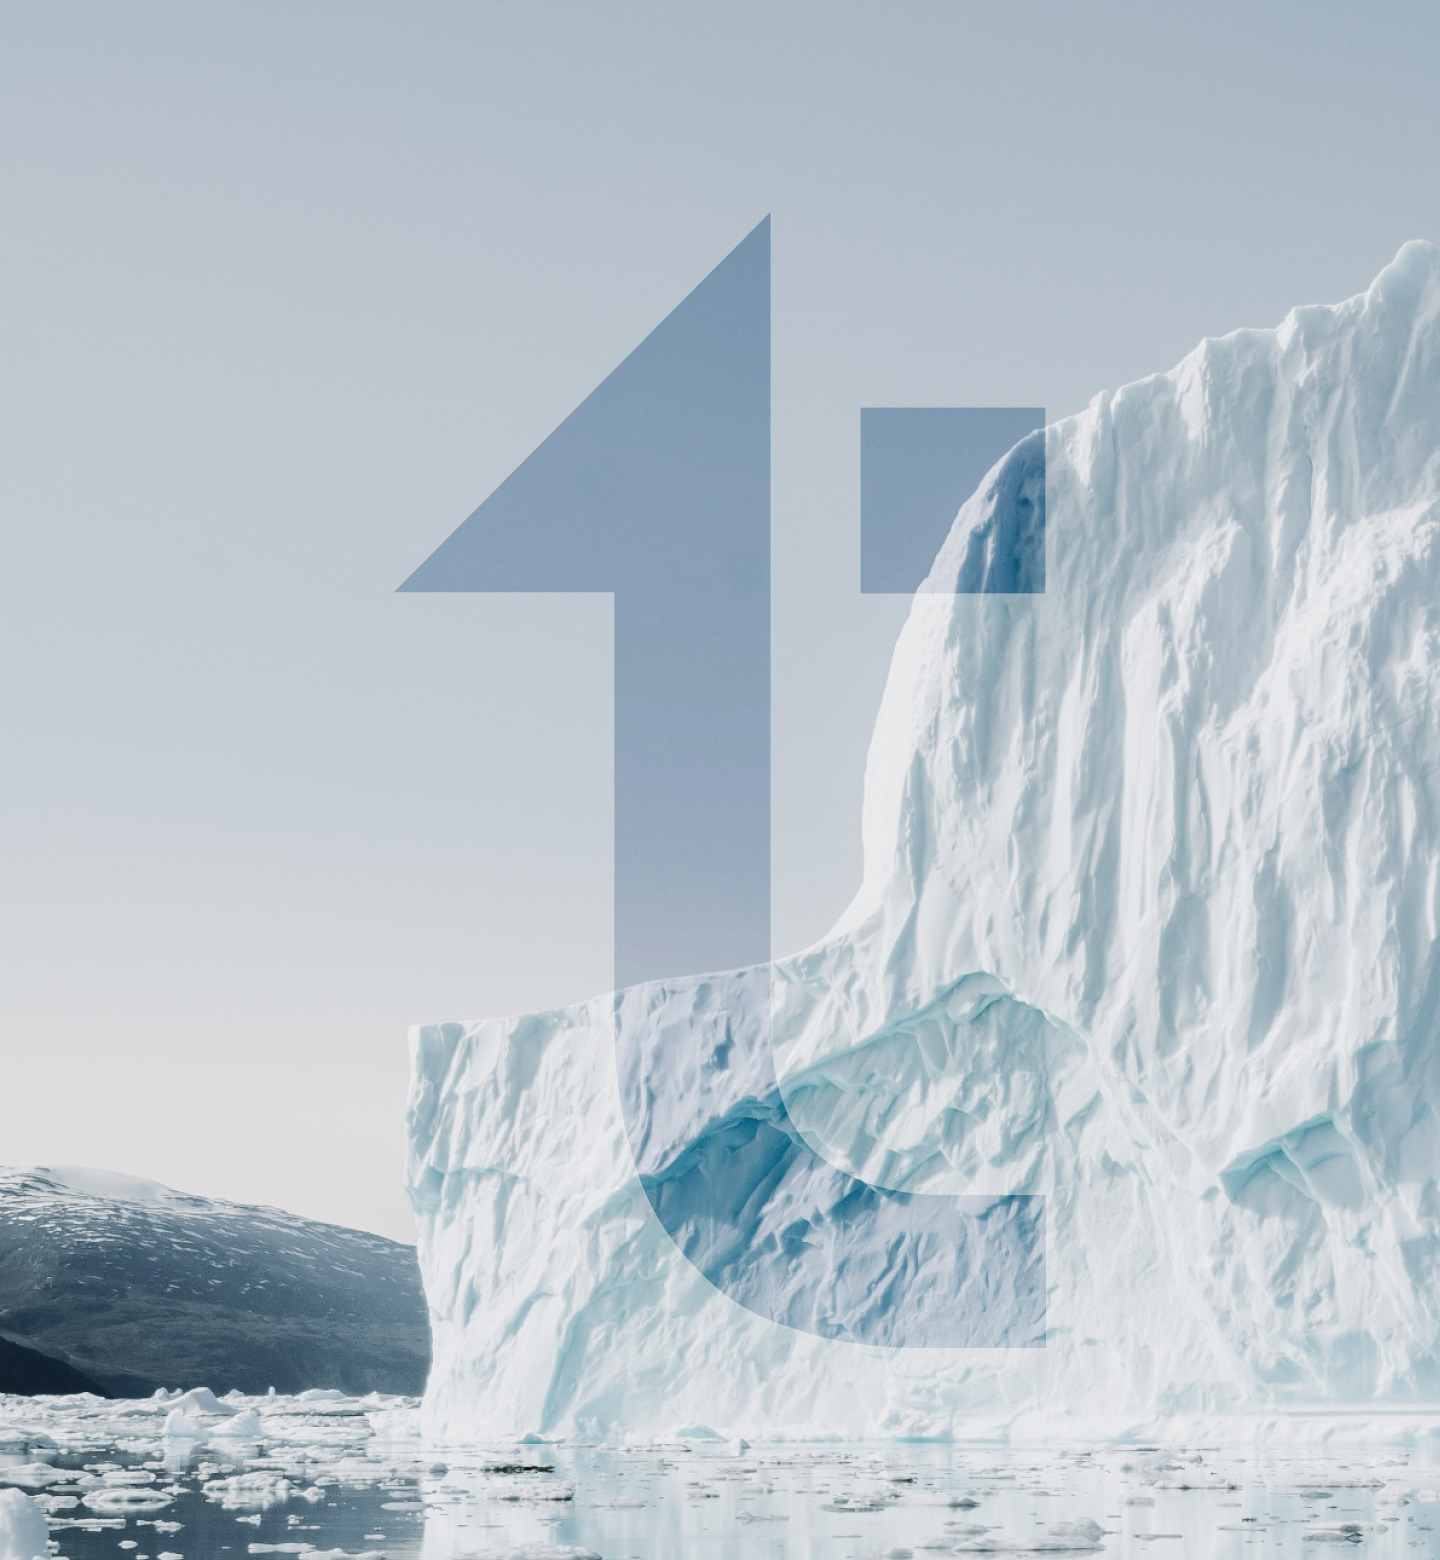 Image of an iceberg floating in water